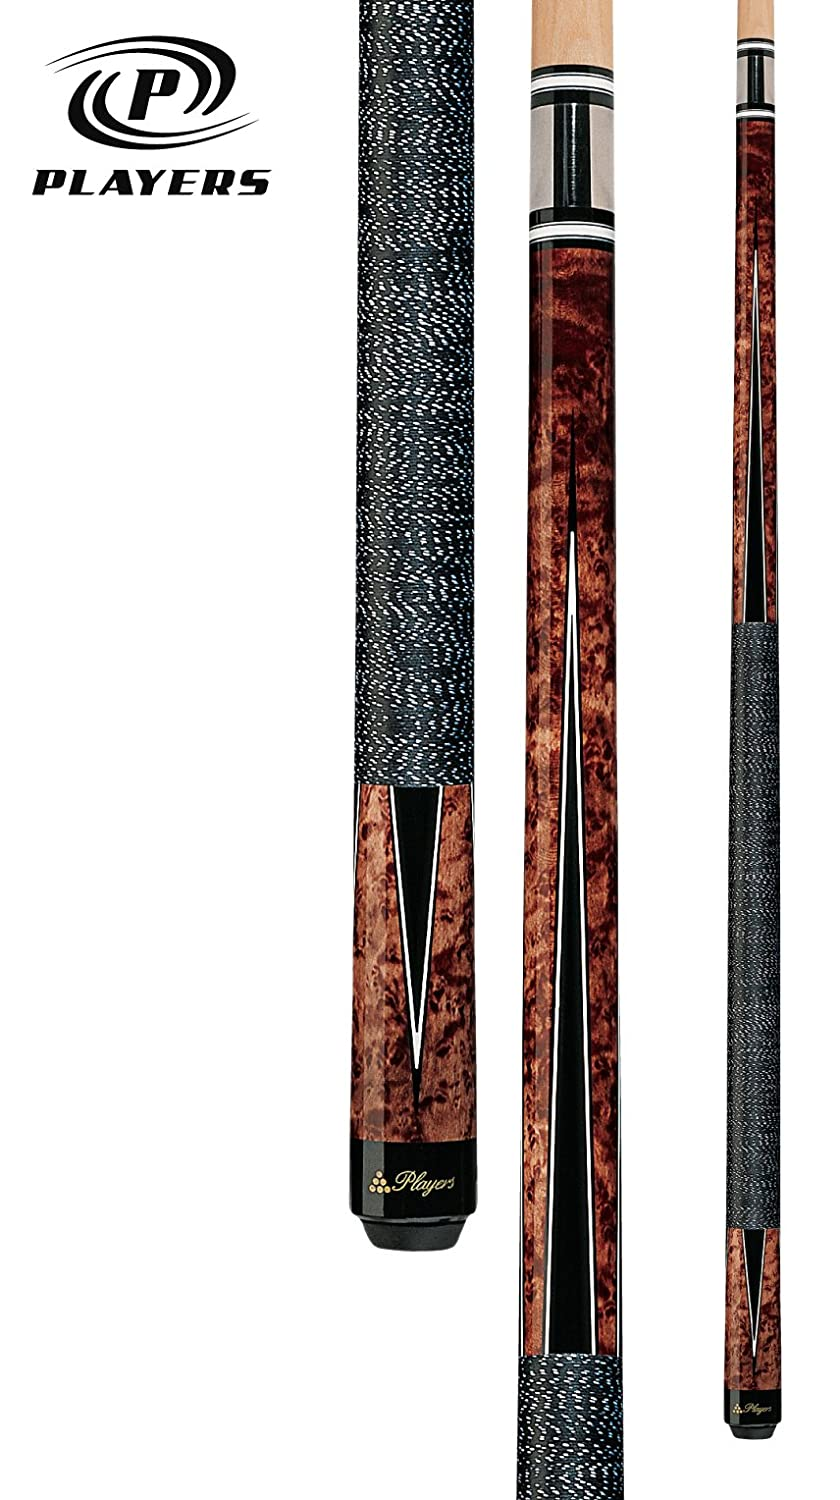 Players G-1003 Umbra Super Birds-Eye Maple with Black and White Points Cue, 20-Ounce PLY1058_2660547